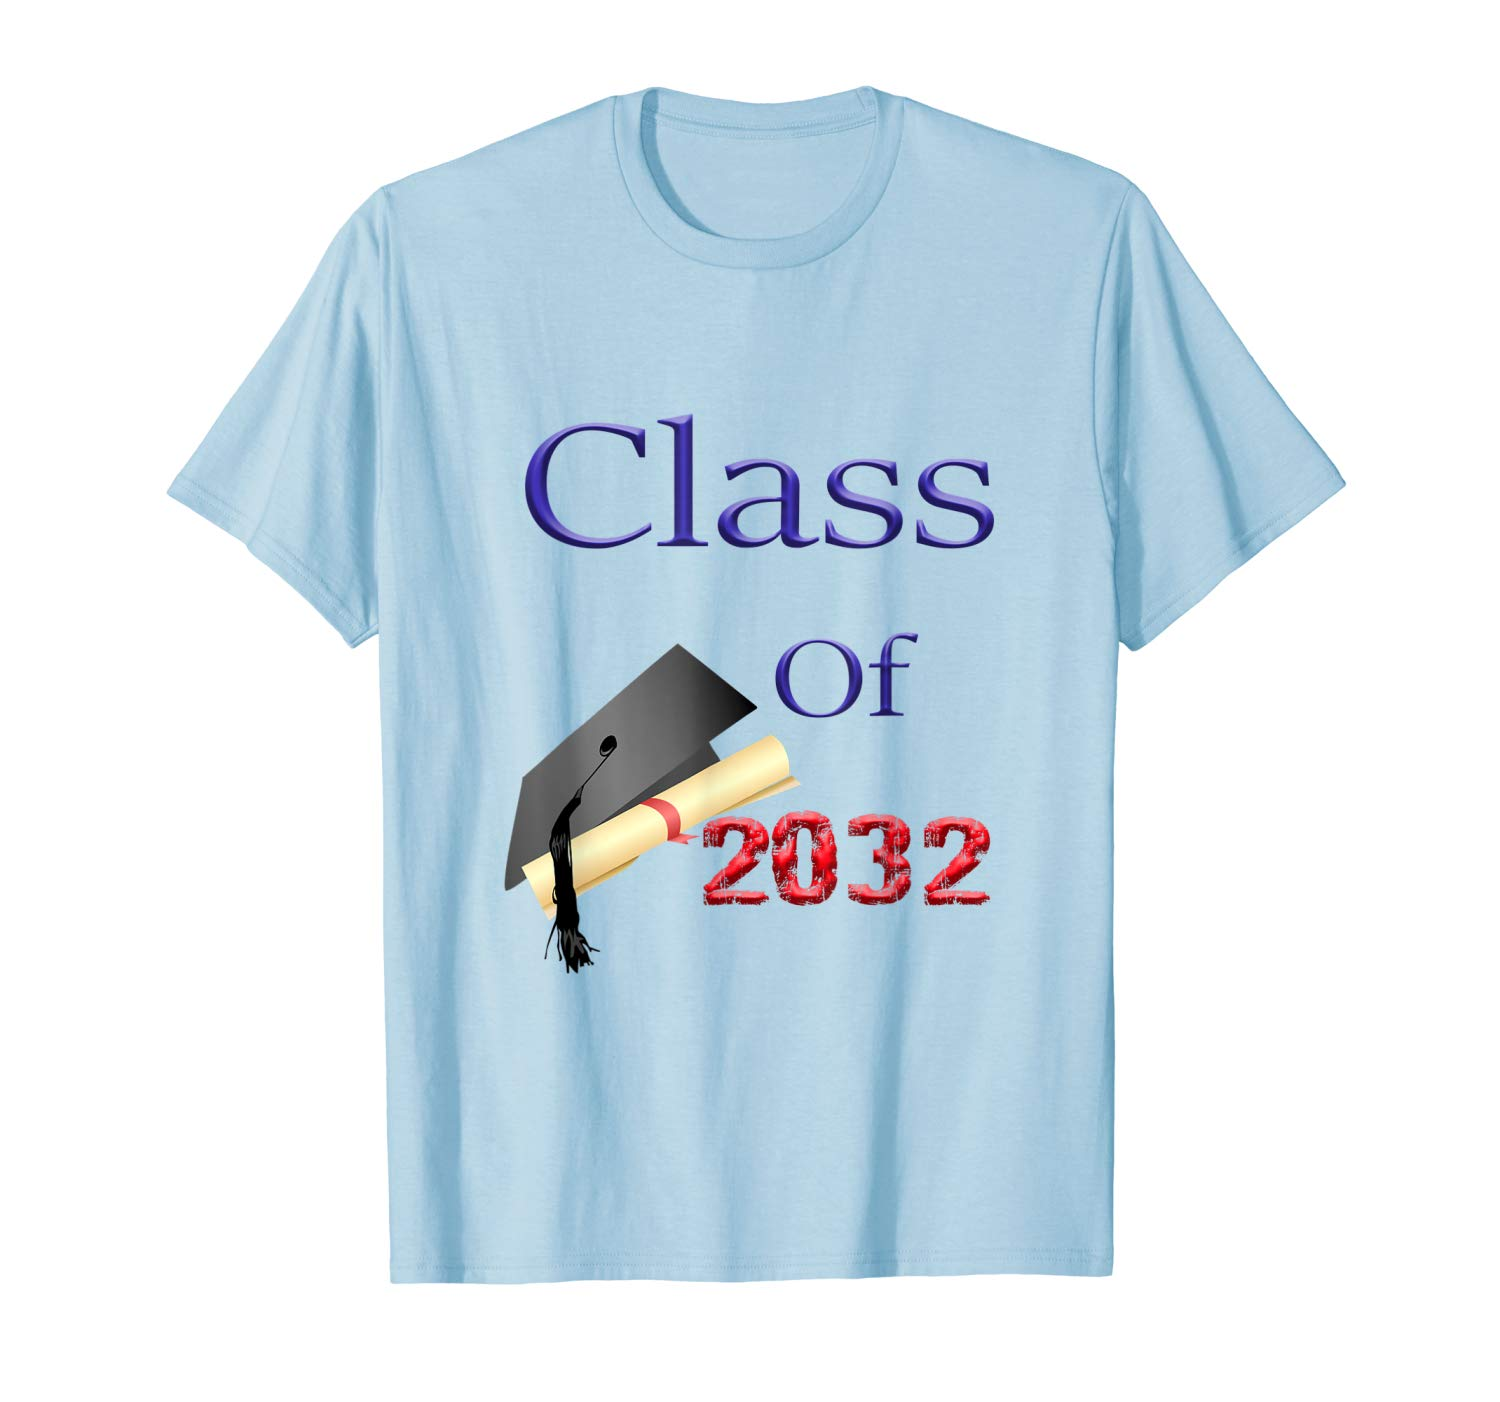 Class Of 2032 First Day Of School Shirts